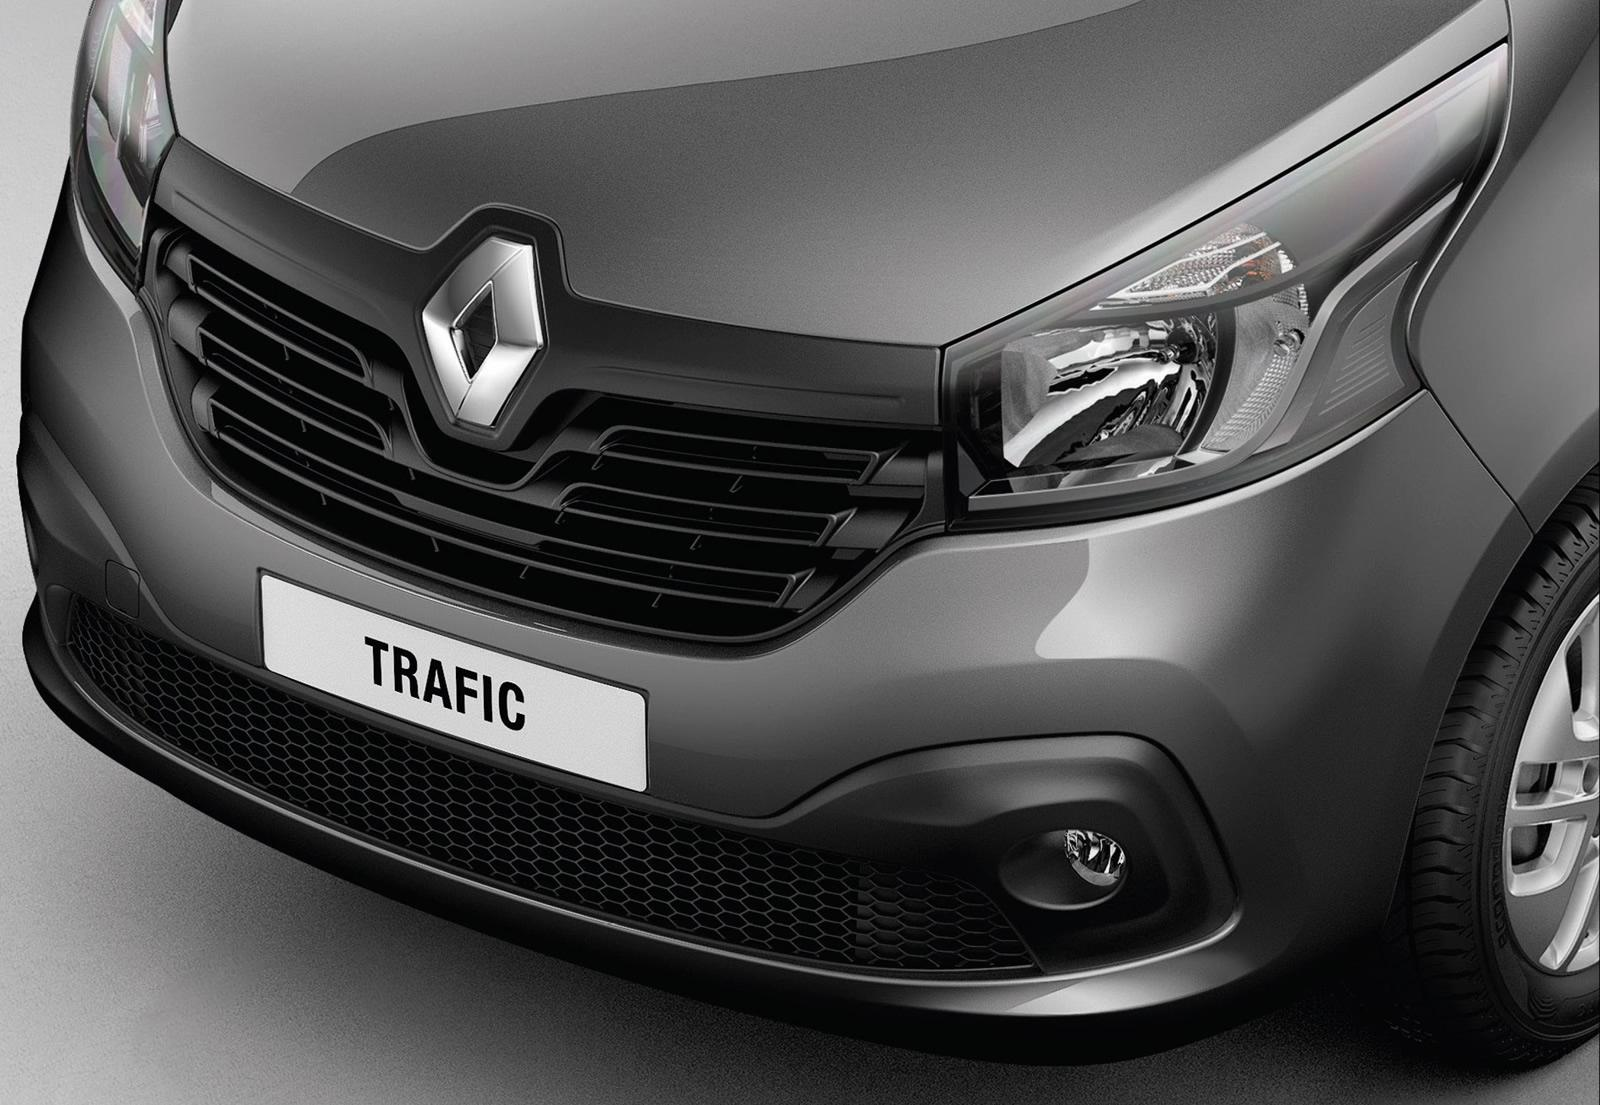 Renault S New Trafic Van Revealed Will Get New 1 6l Turbo